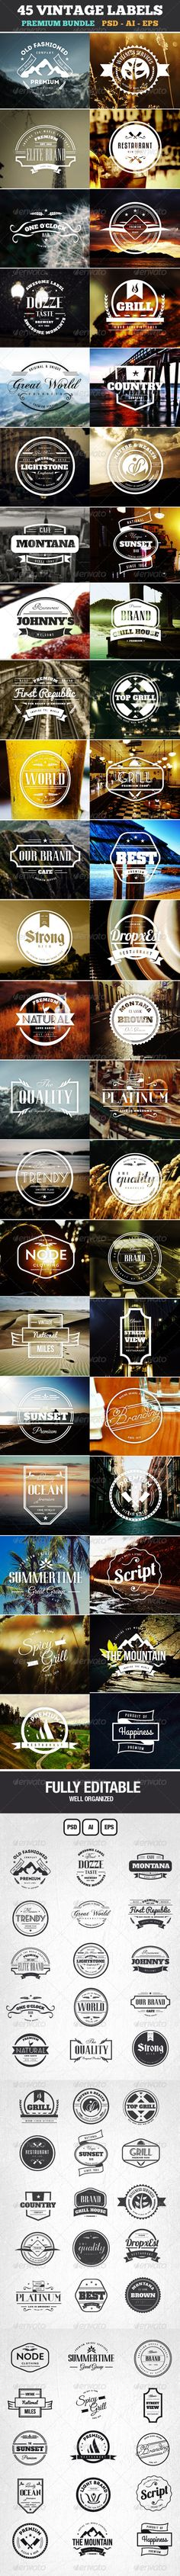 45 Vintage Labels & Badges Logos Bundle - Badges & Stickers Web Elements